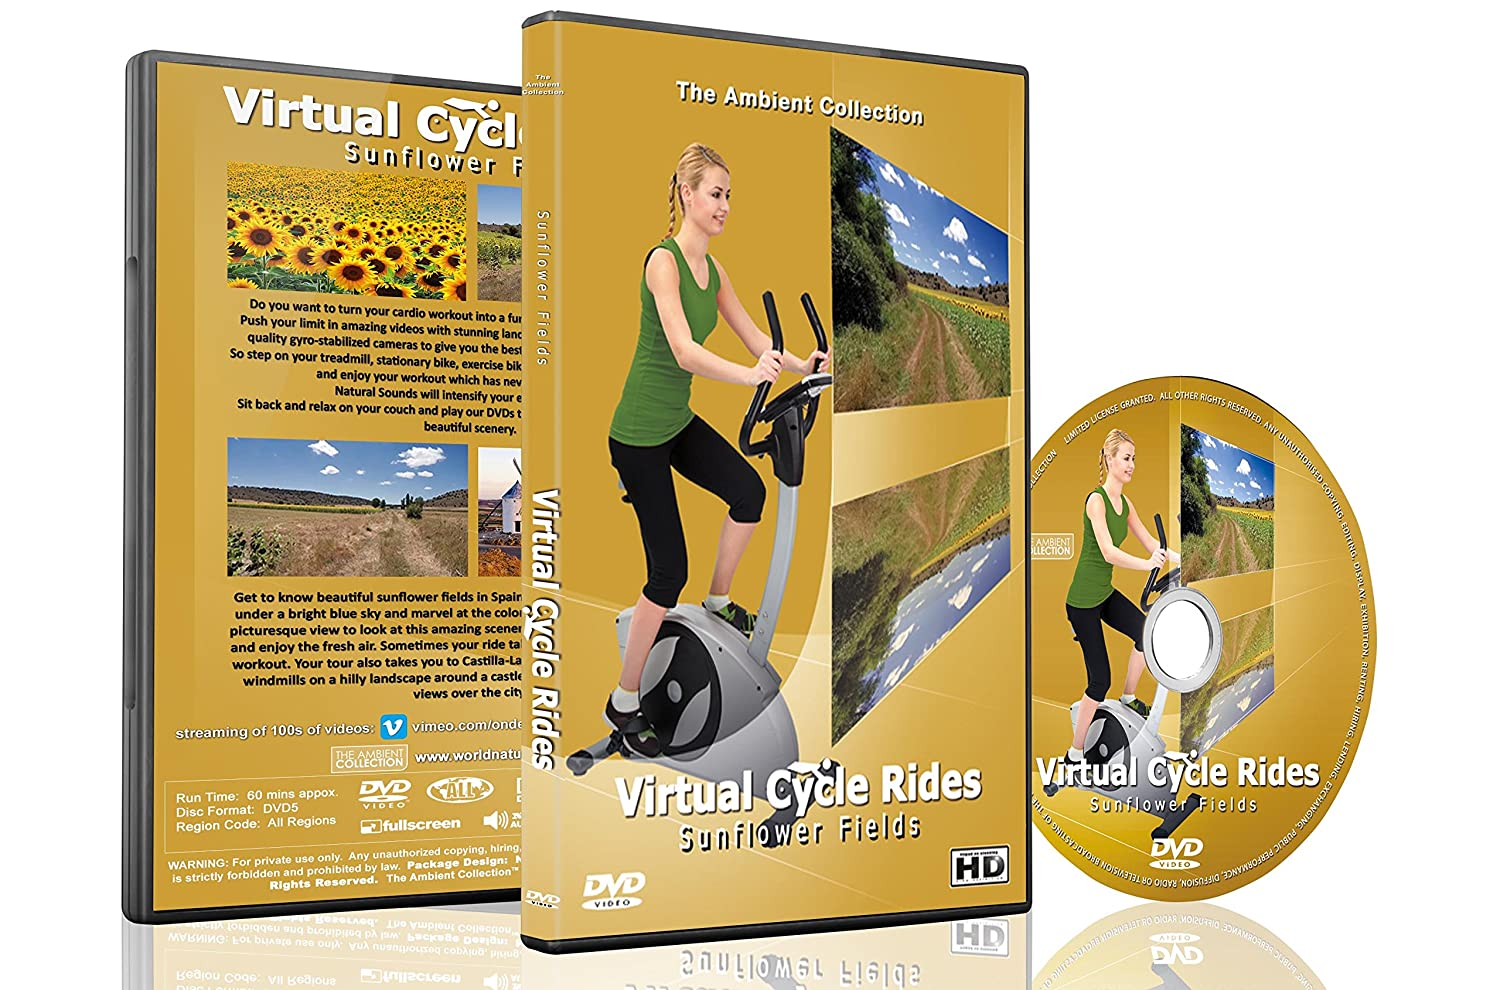 Amazon.com: Virtual Cycle Rides DVD - Sunflower Fields - for Indoor Cycling, Treadmill and Running Workouts: The Ambient Collection, Treadmill and Fitness ...